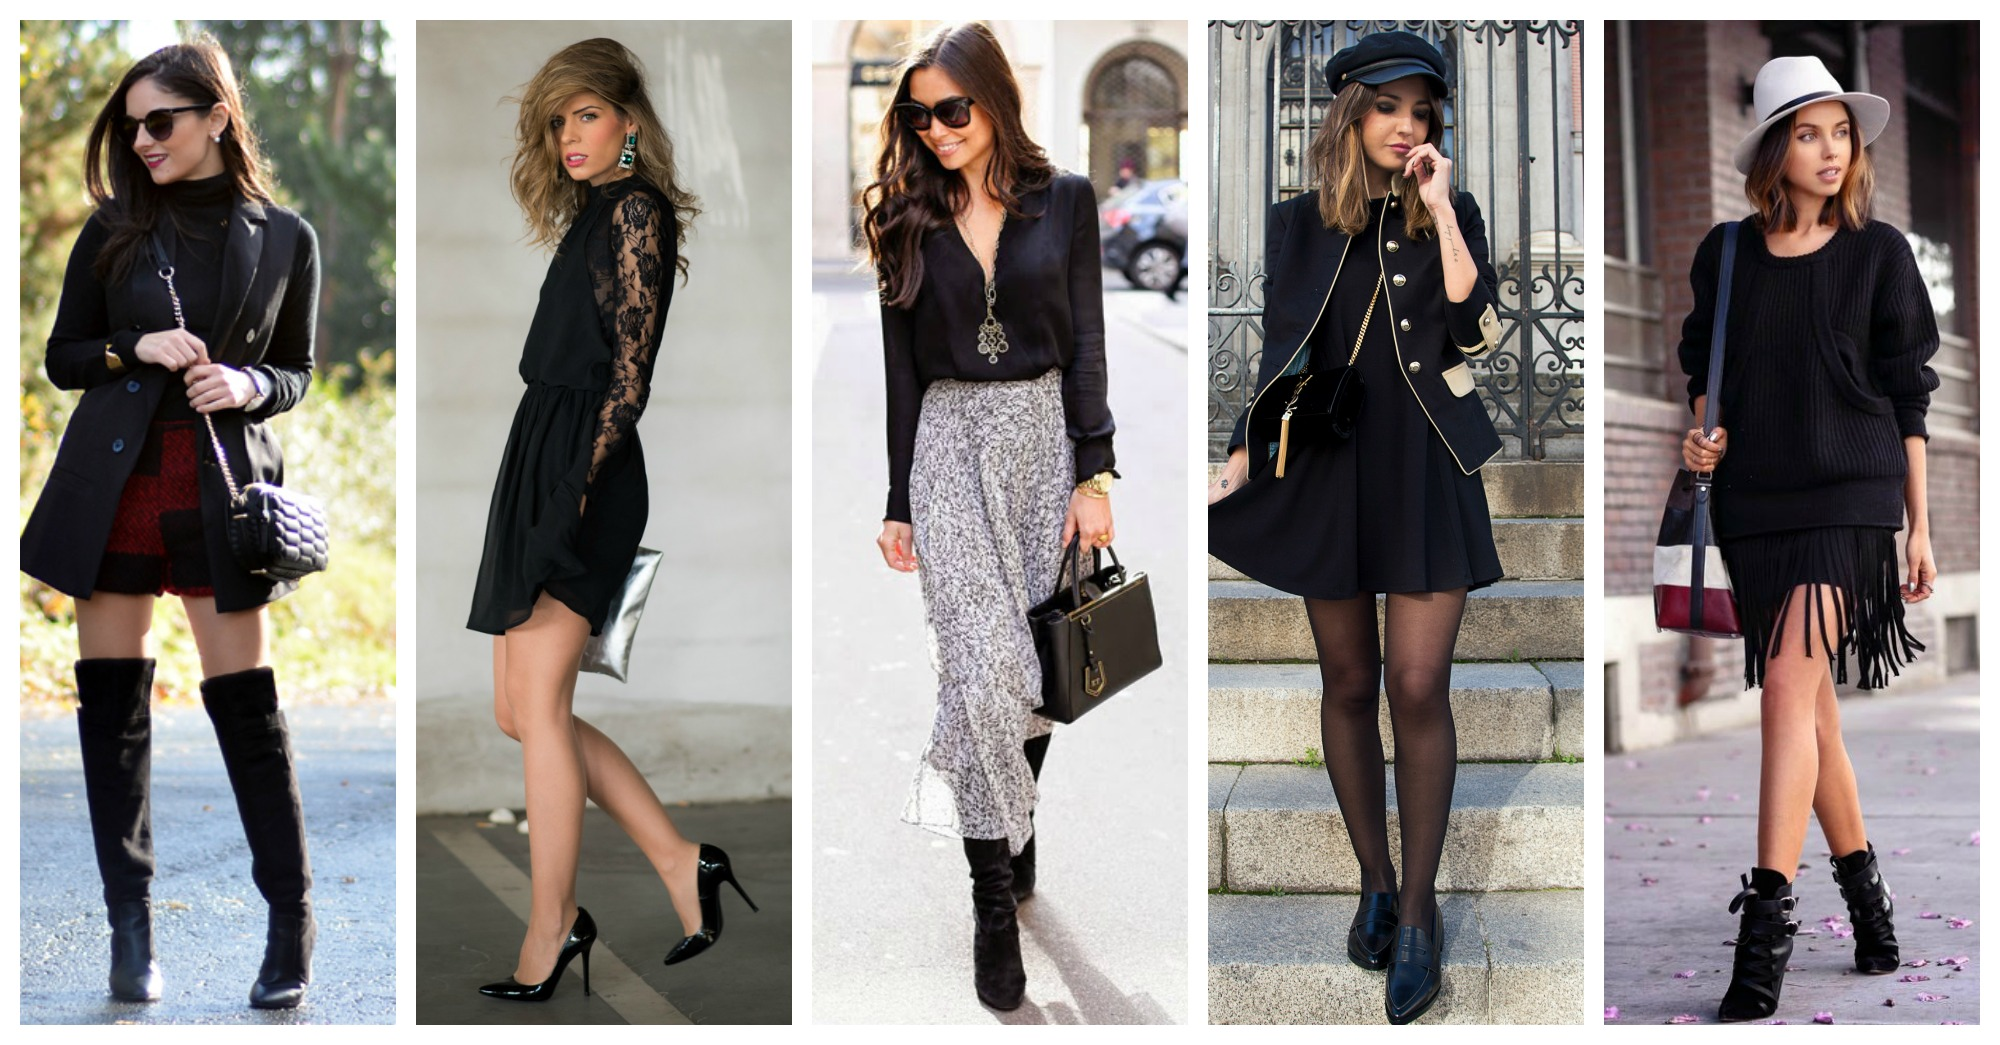 15 Ways to Wear Black and Look Elegant and Chic This Winter